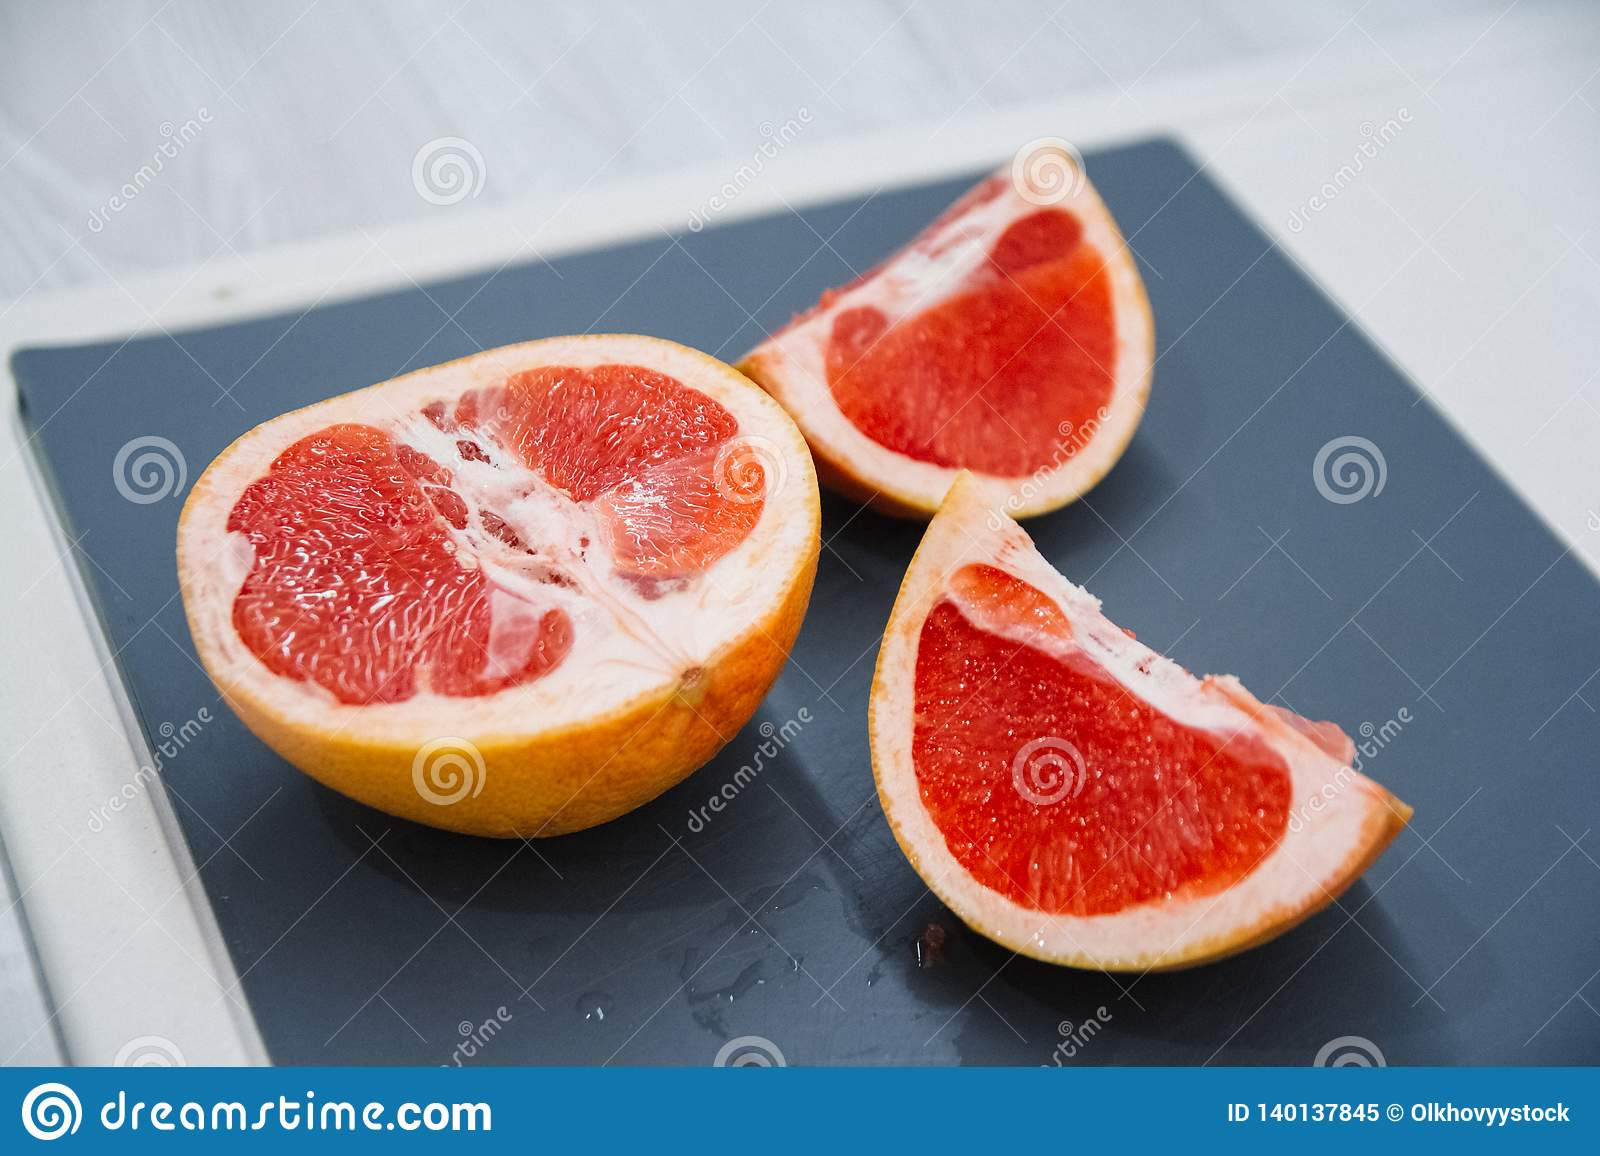 Chopped Grapefruits selective focus on a vintage background as detailed close-up shot